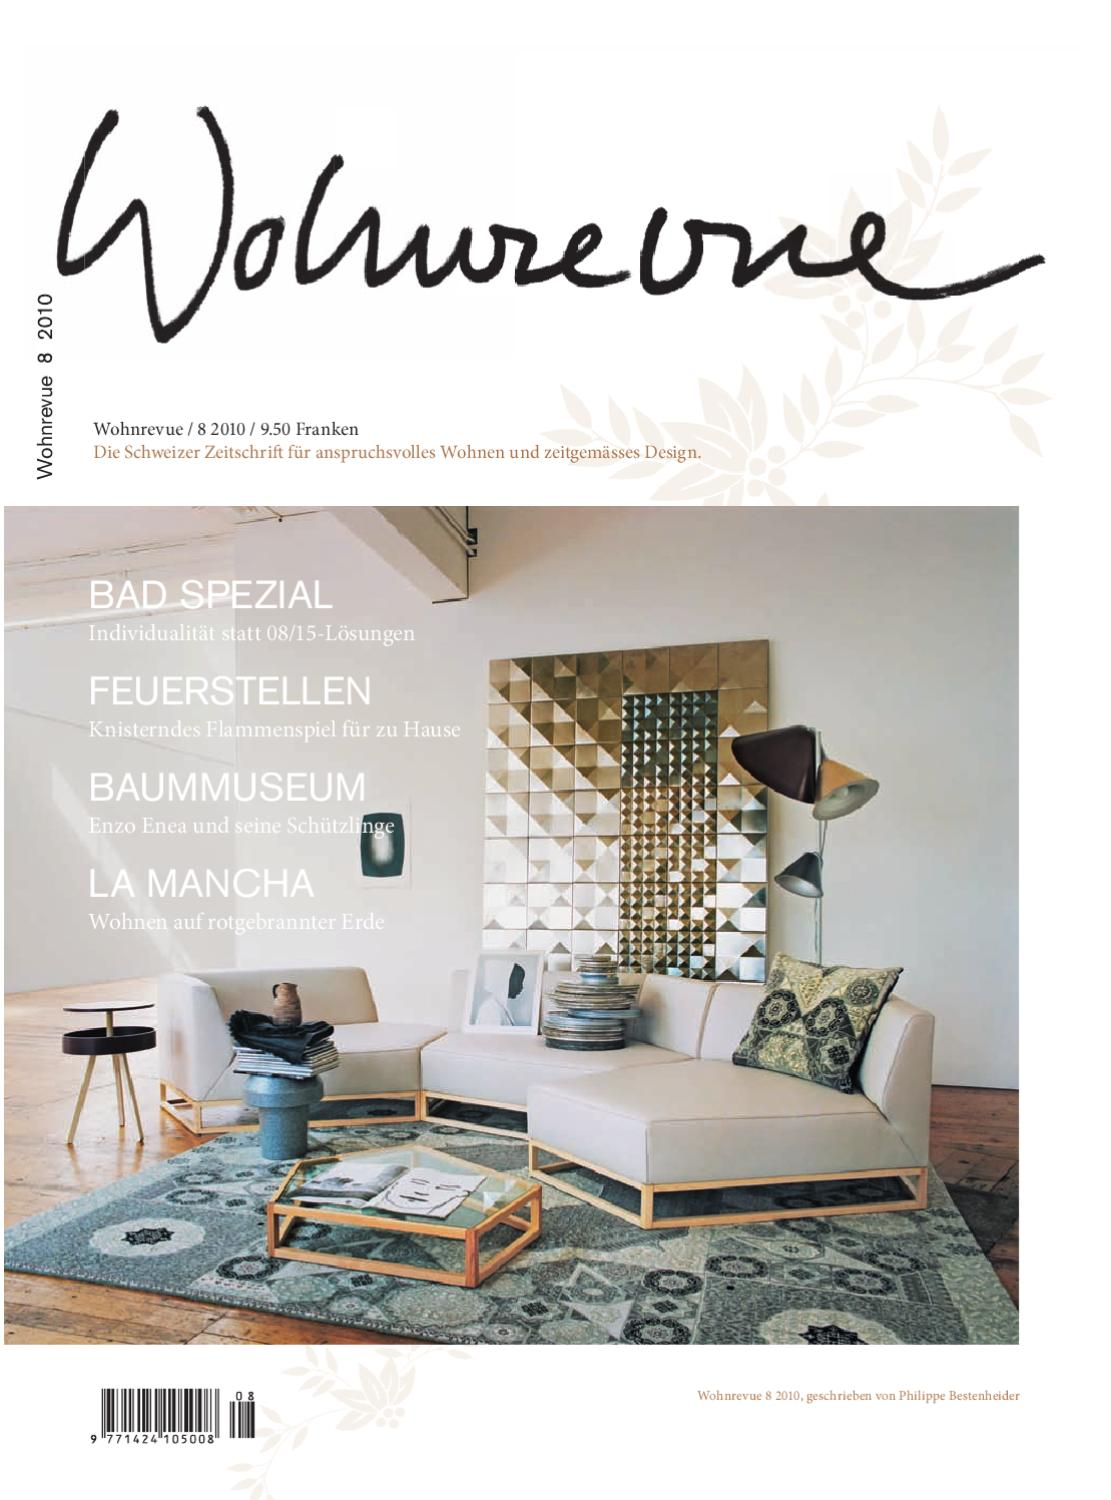 wohnrevue 08 2010 by boll verlag issuu. Black Bedroom Furniture Sets. Home Design Ideas